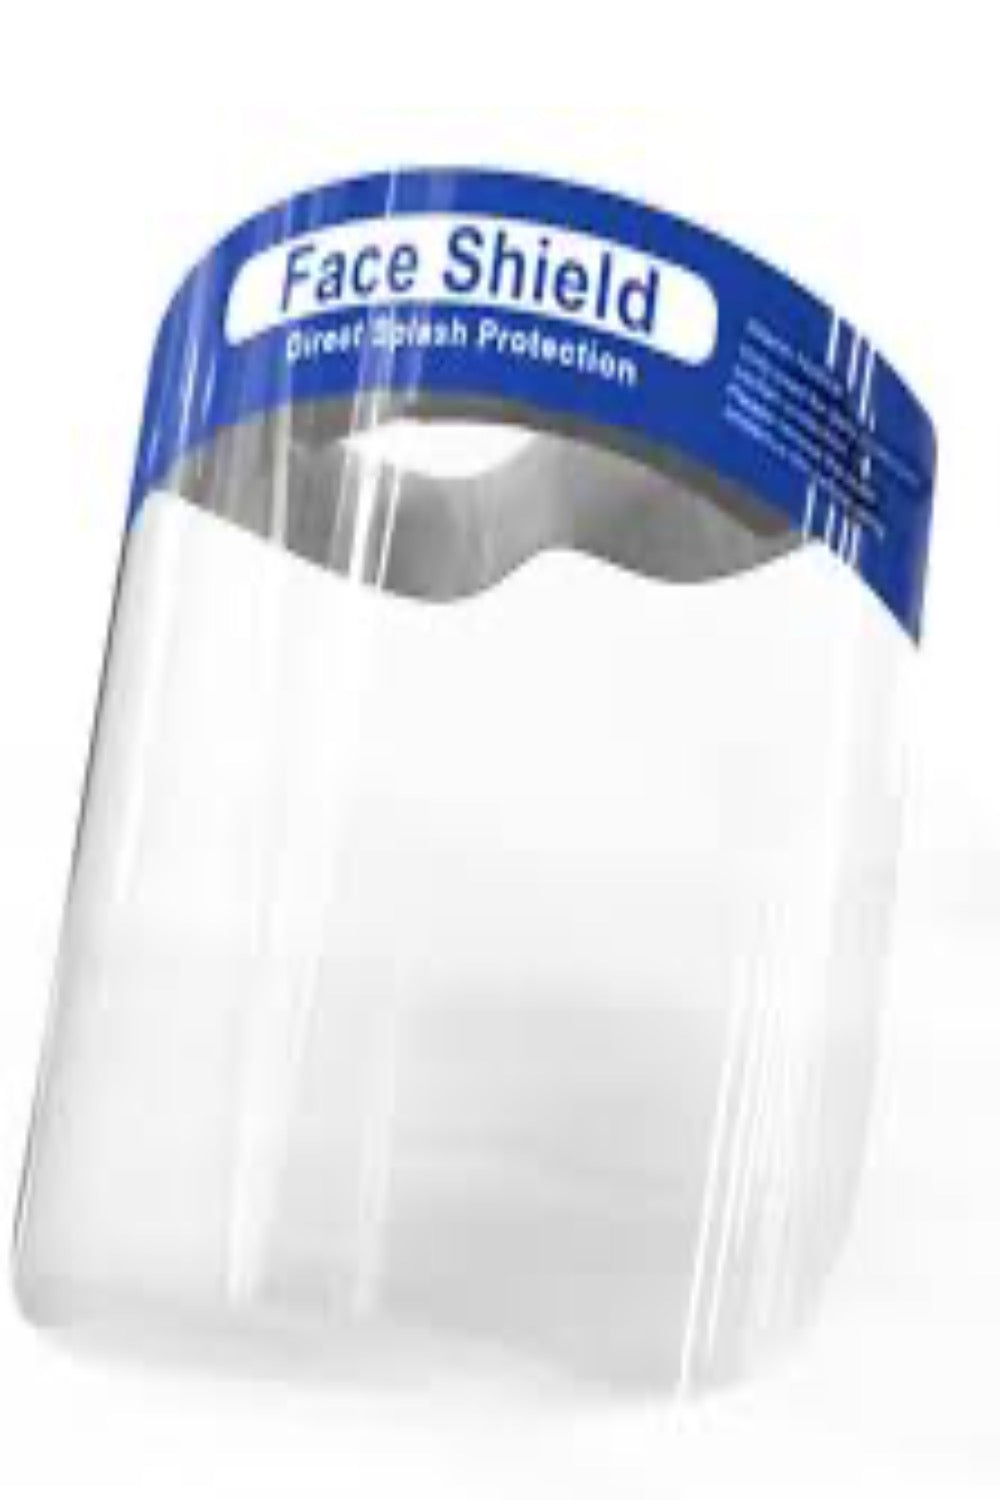 sneeze guards, productive guards, portable guards Face Shield 5/pack, with Adjustable Elastic Band for All Sizes. - PureUps